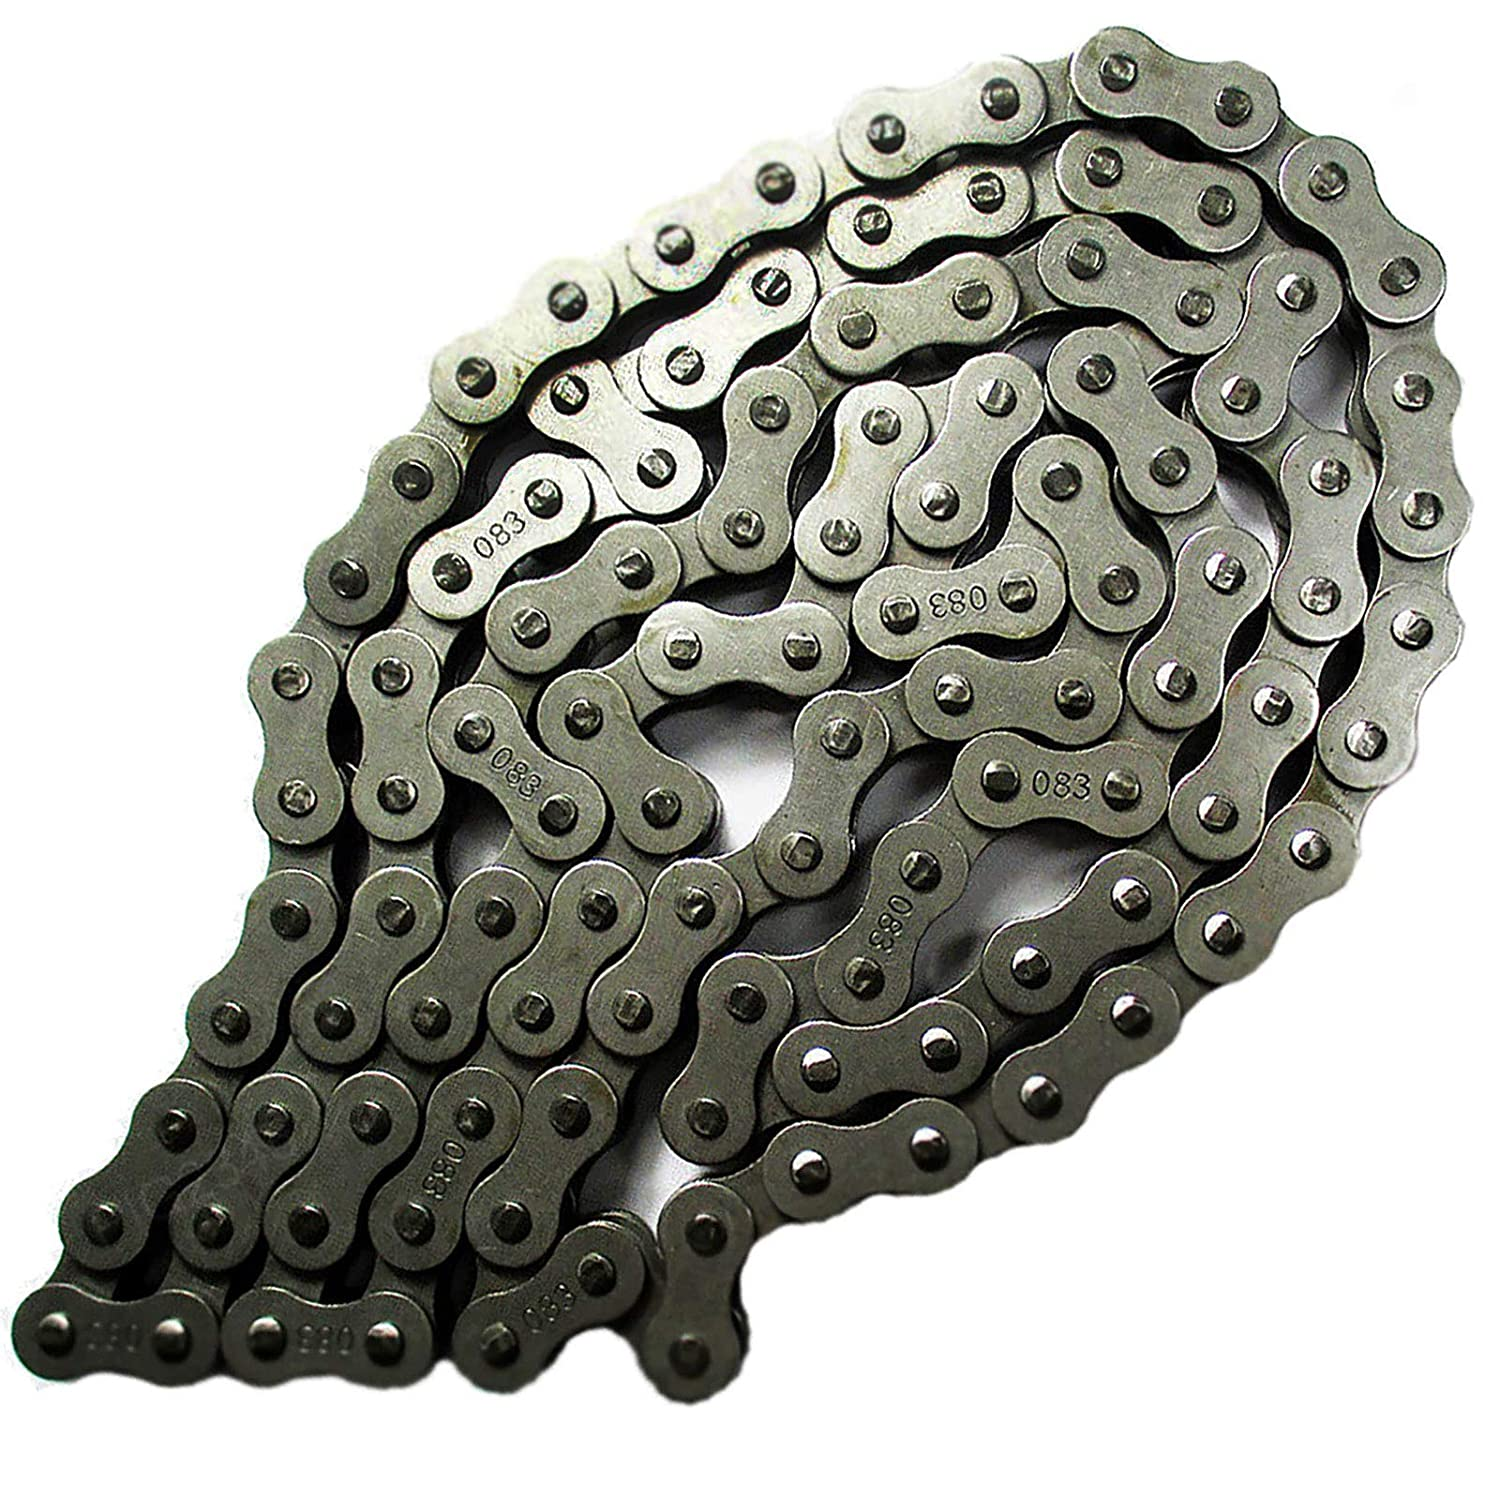 415-110L Chain /& Master Link for 49cc to 80cc 2-Stroke Engine Motorized Bicycles